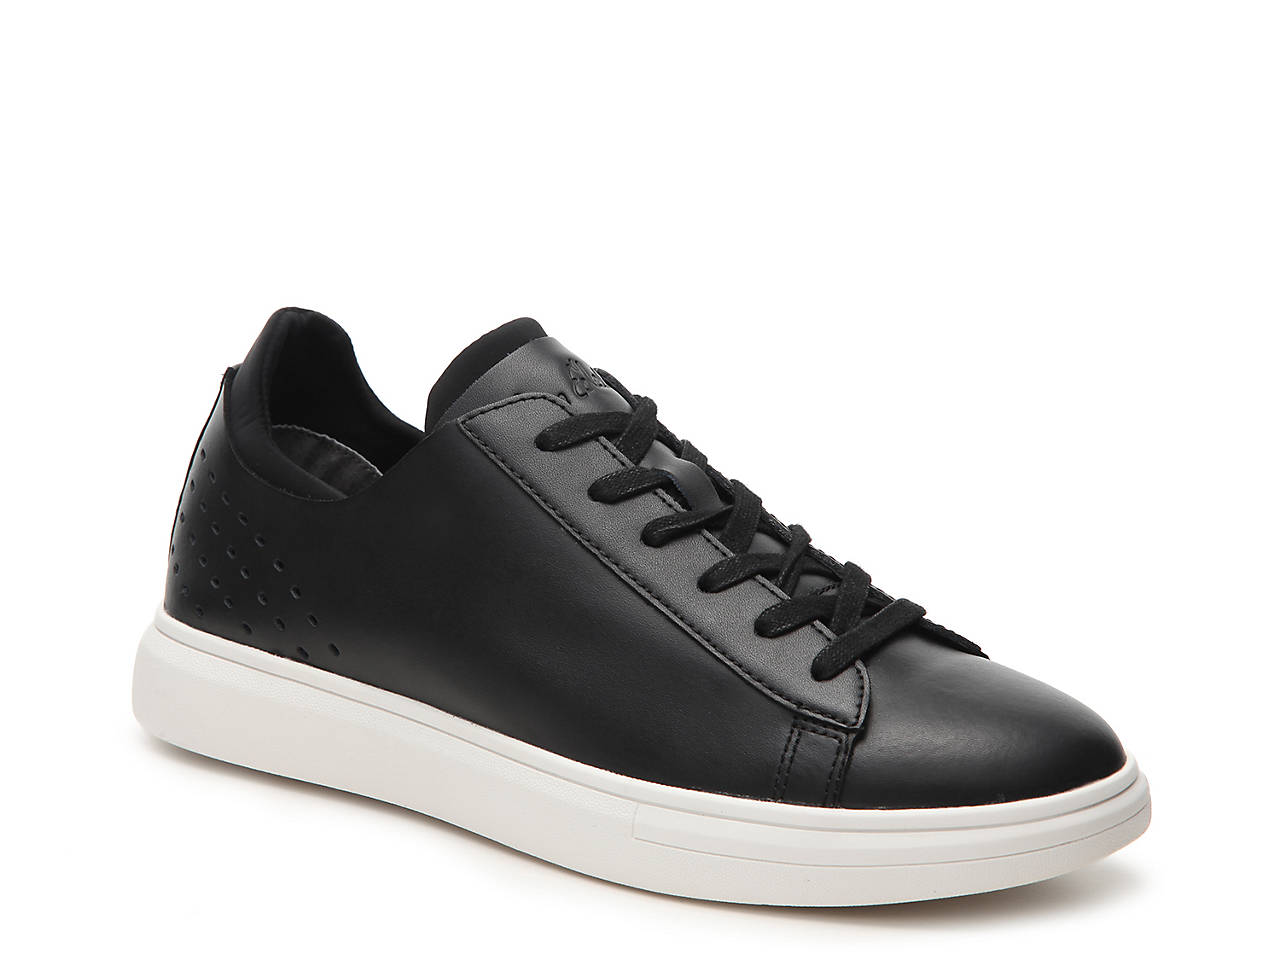 Discount Collections Sam Edelman Jared Lowest Price Cheap Price Comfortable IbxPcXykvh